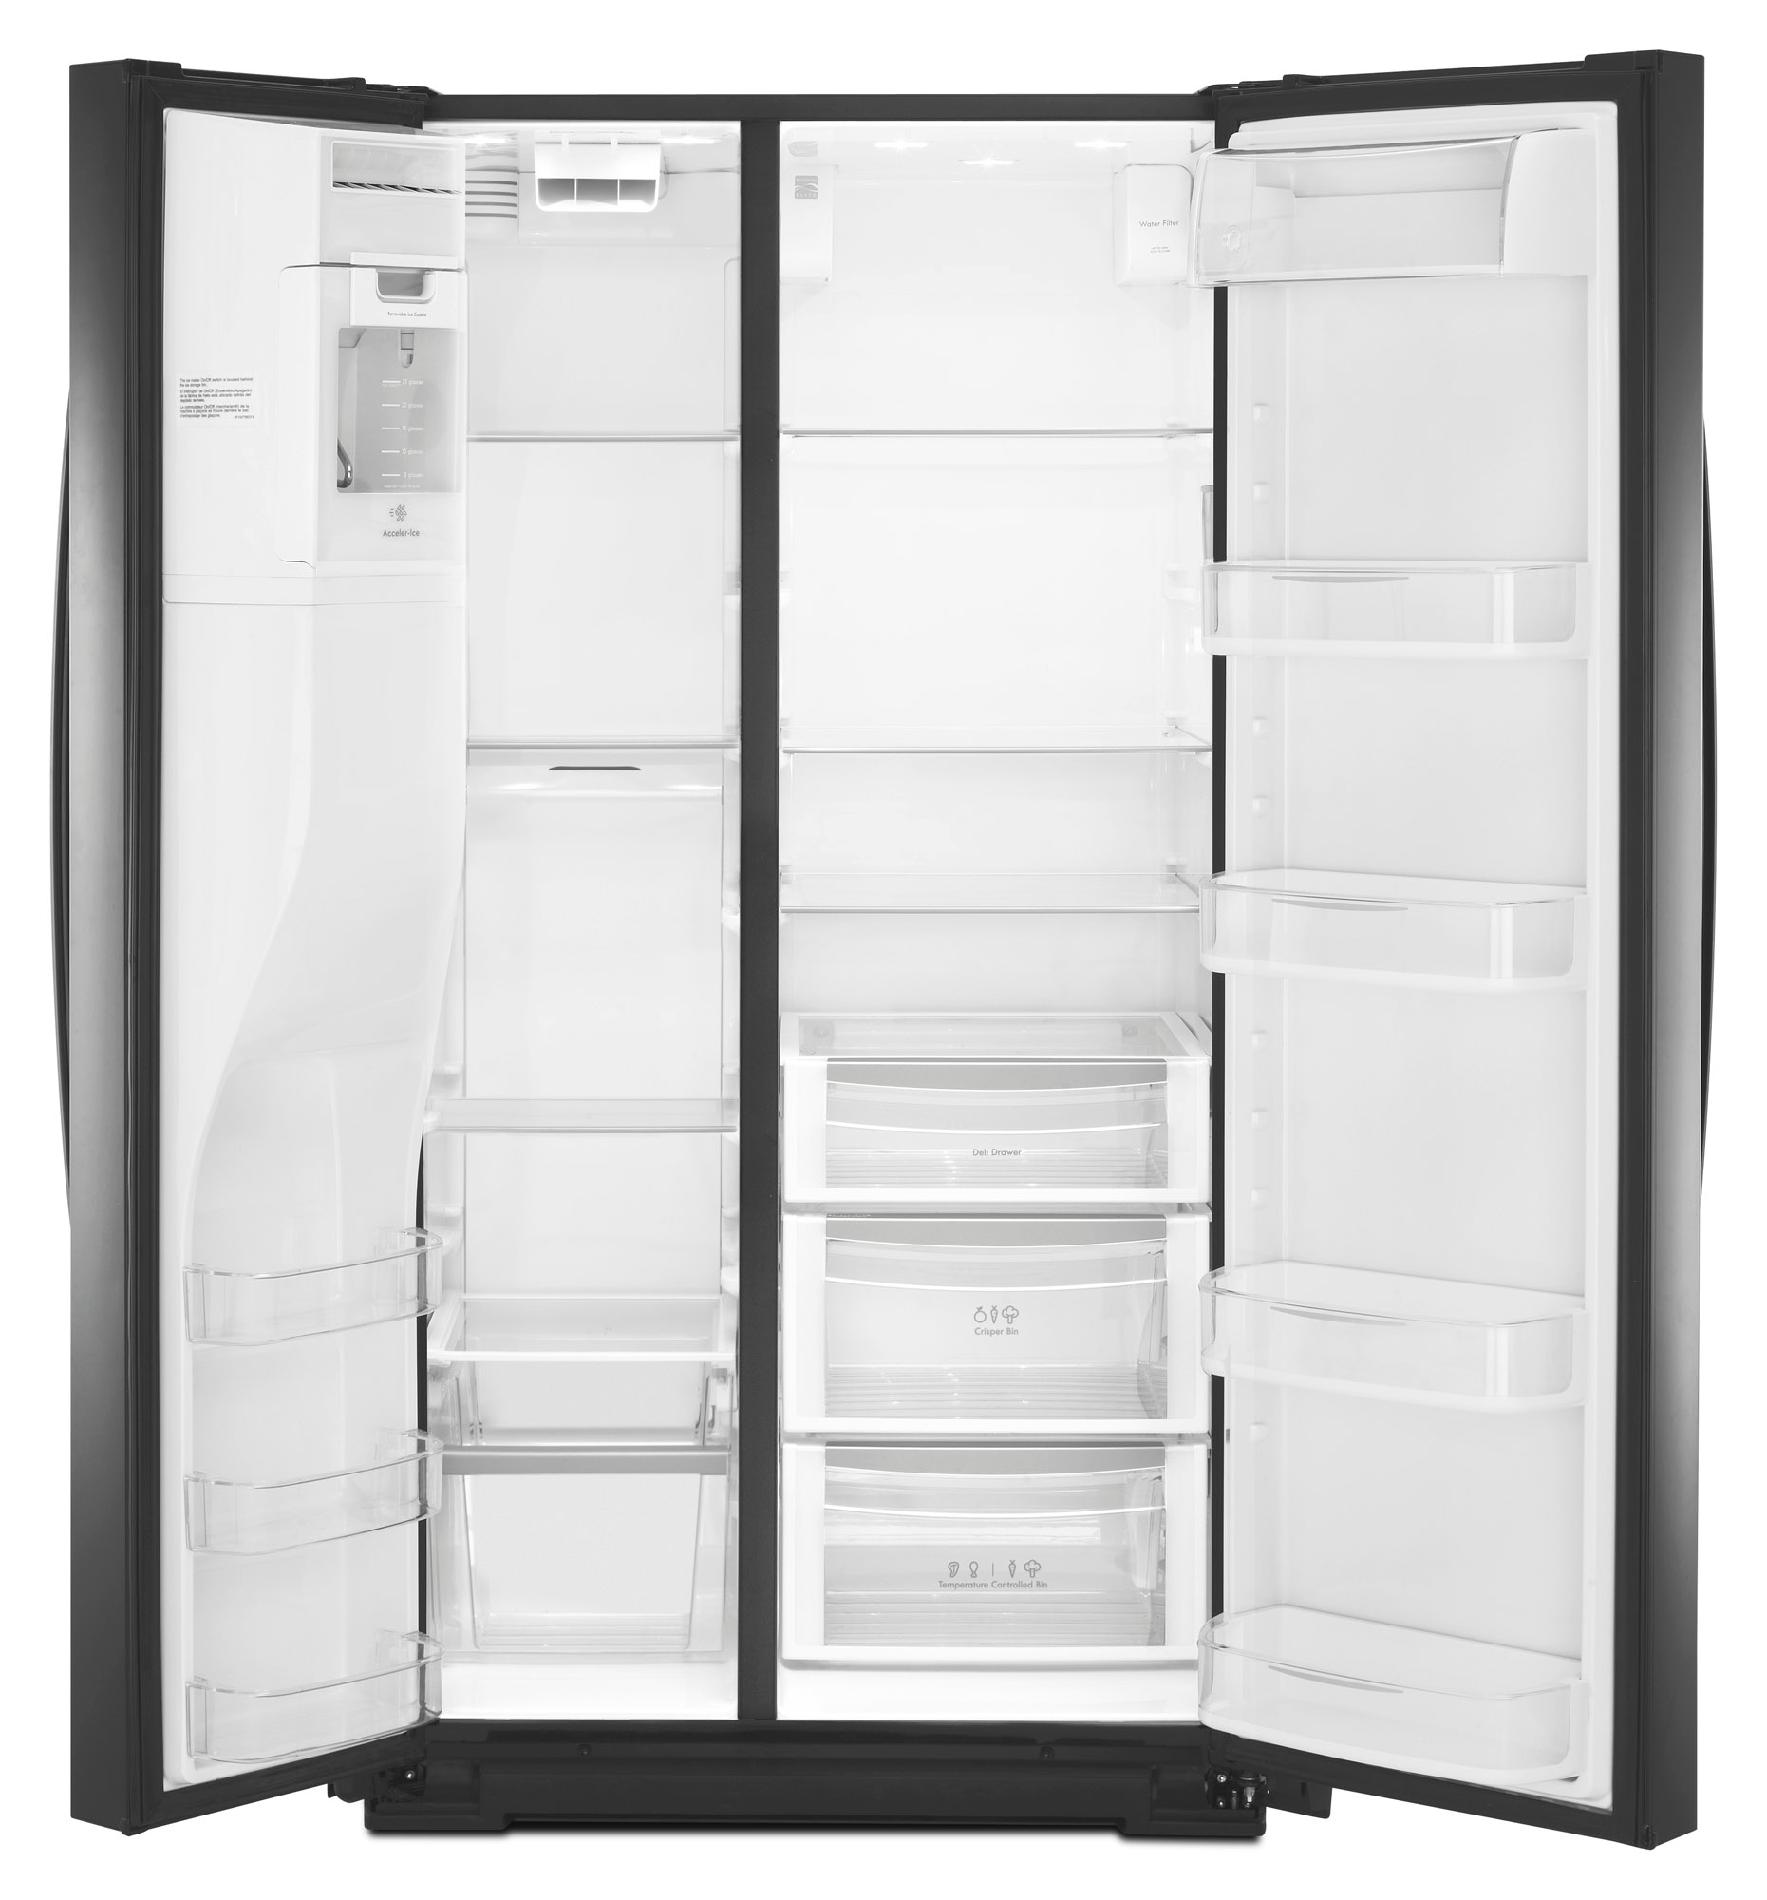 Kenmore Elite 24.5 cu. ft. Counter-Depth Side-by-Side Refrigerator - Black